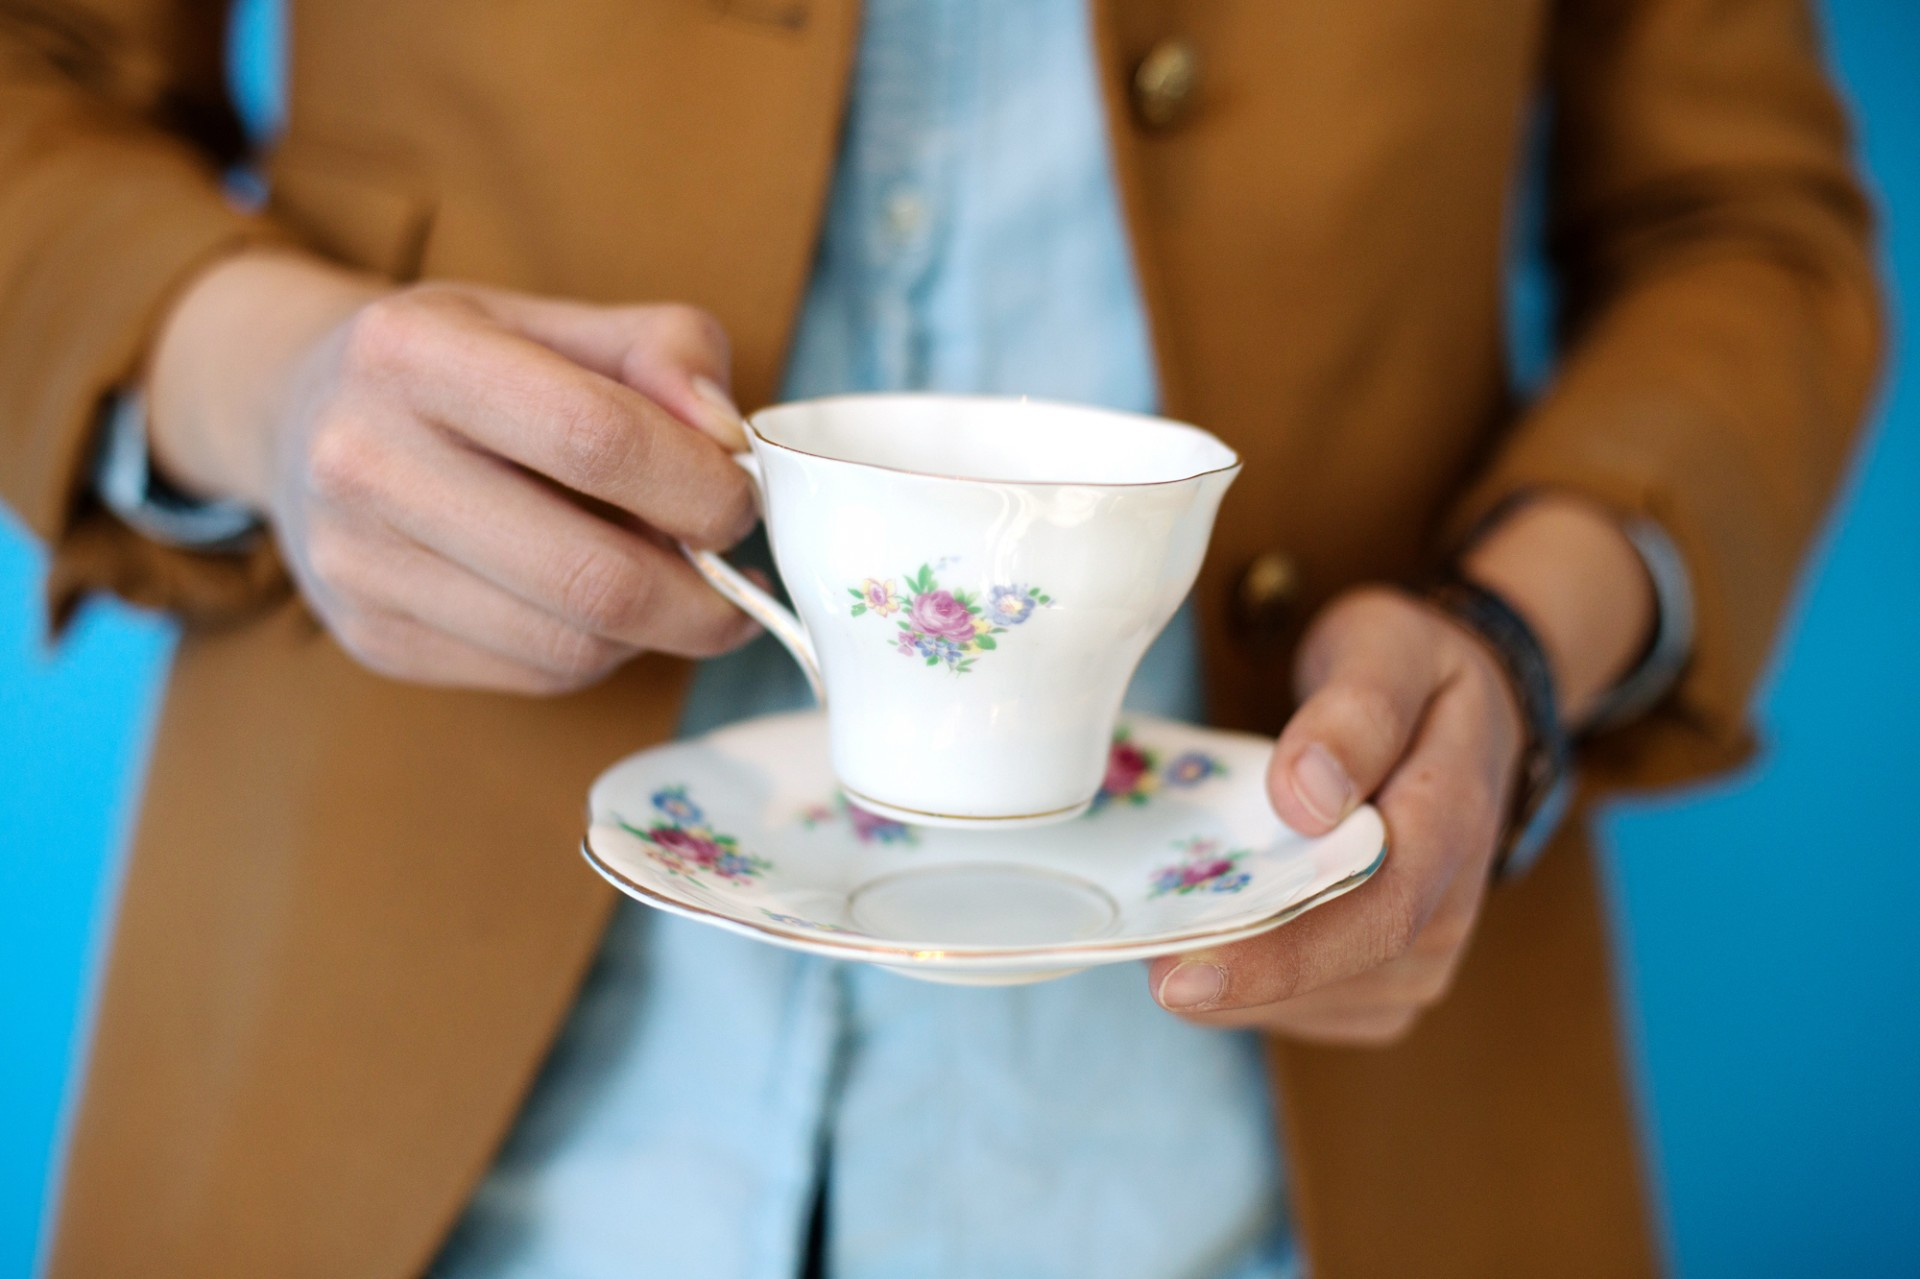 The perfect cup of tea, prepared by Alison Bruzek. Photo: Meredith Rizzo/NPR